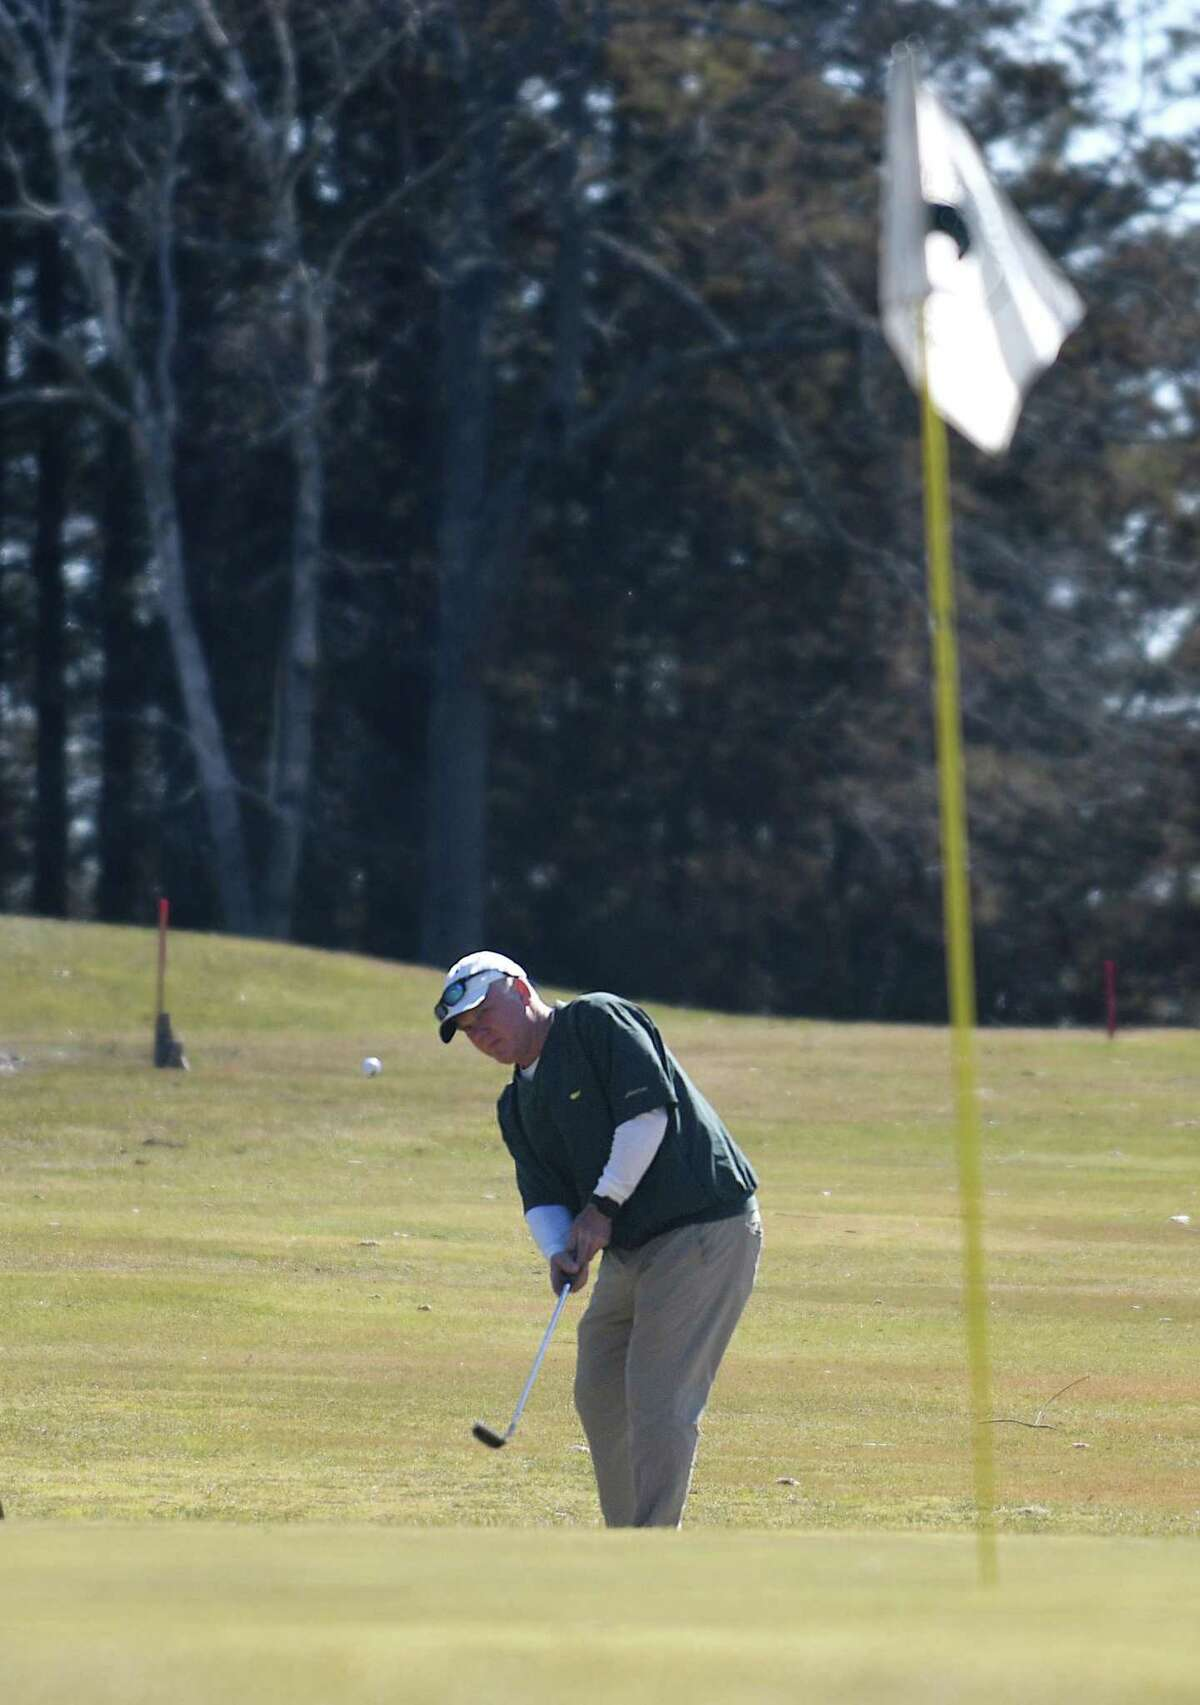 Glenville's Mark Grund chips on to the green on the opening day at Griffith E. Harris Golf Course in Greenwich, Conn. Tuesday, March 23, 2021. Greenwich's public golf course opened for the season on Tuesday.